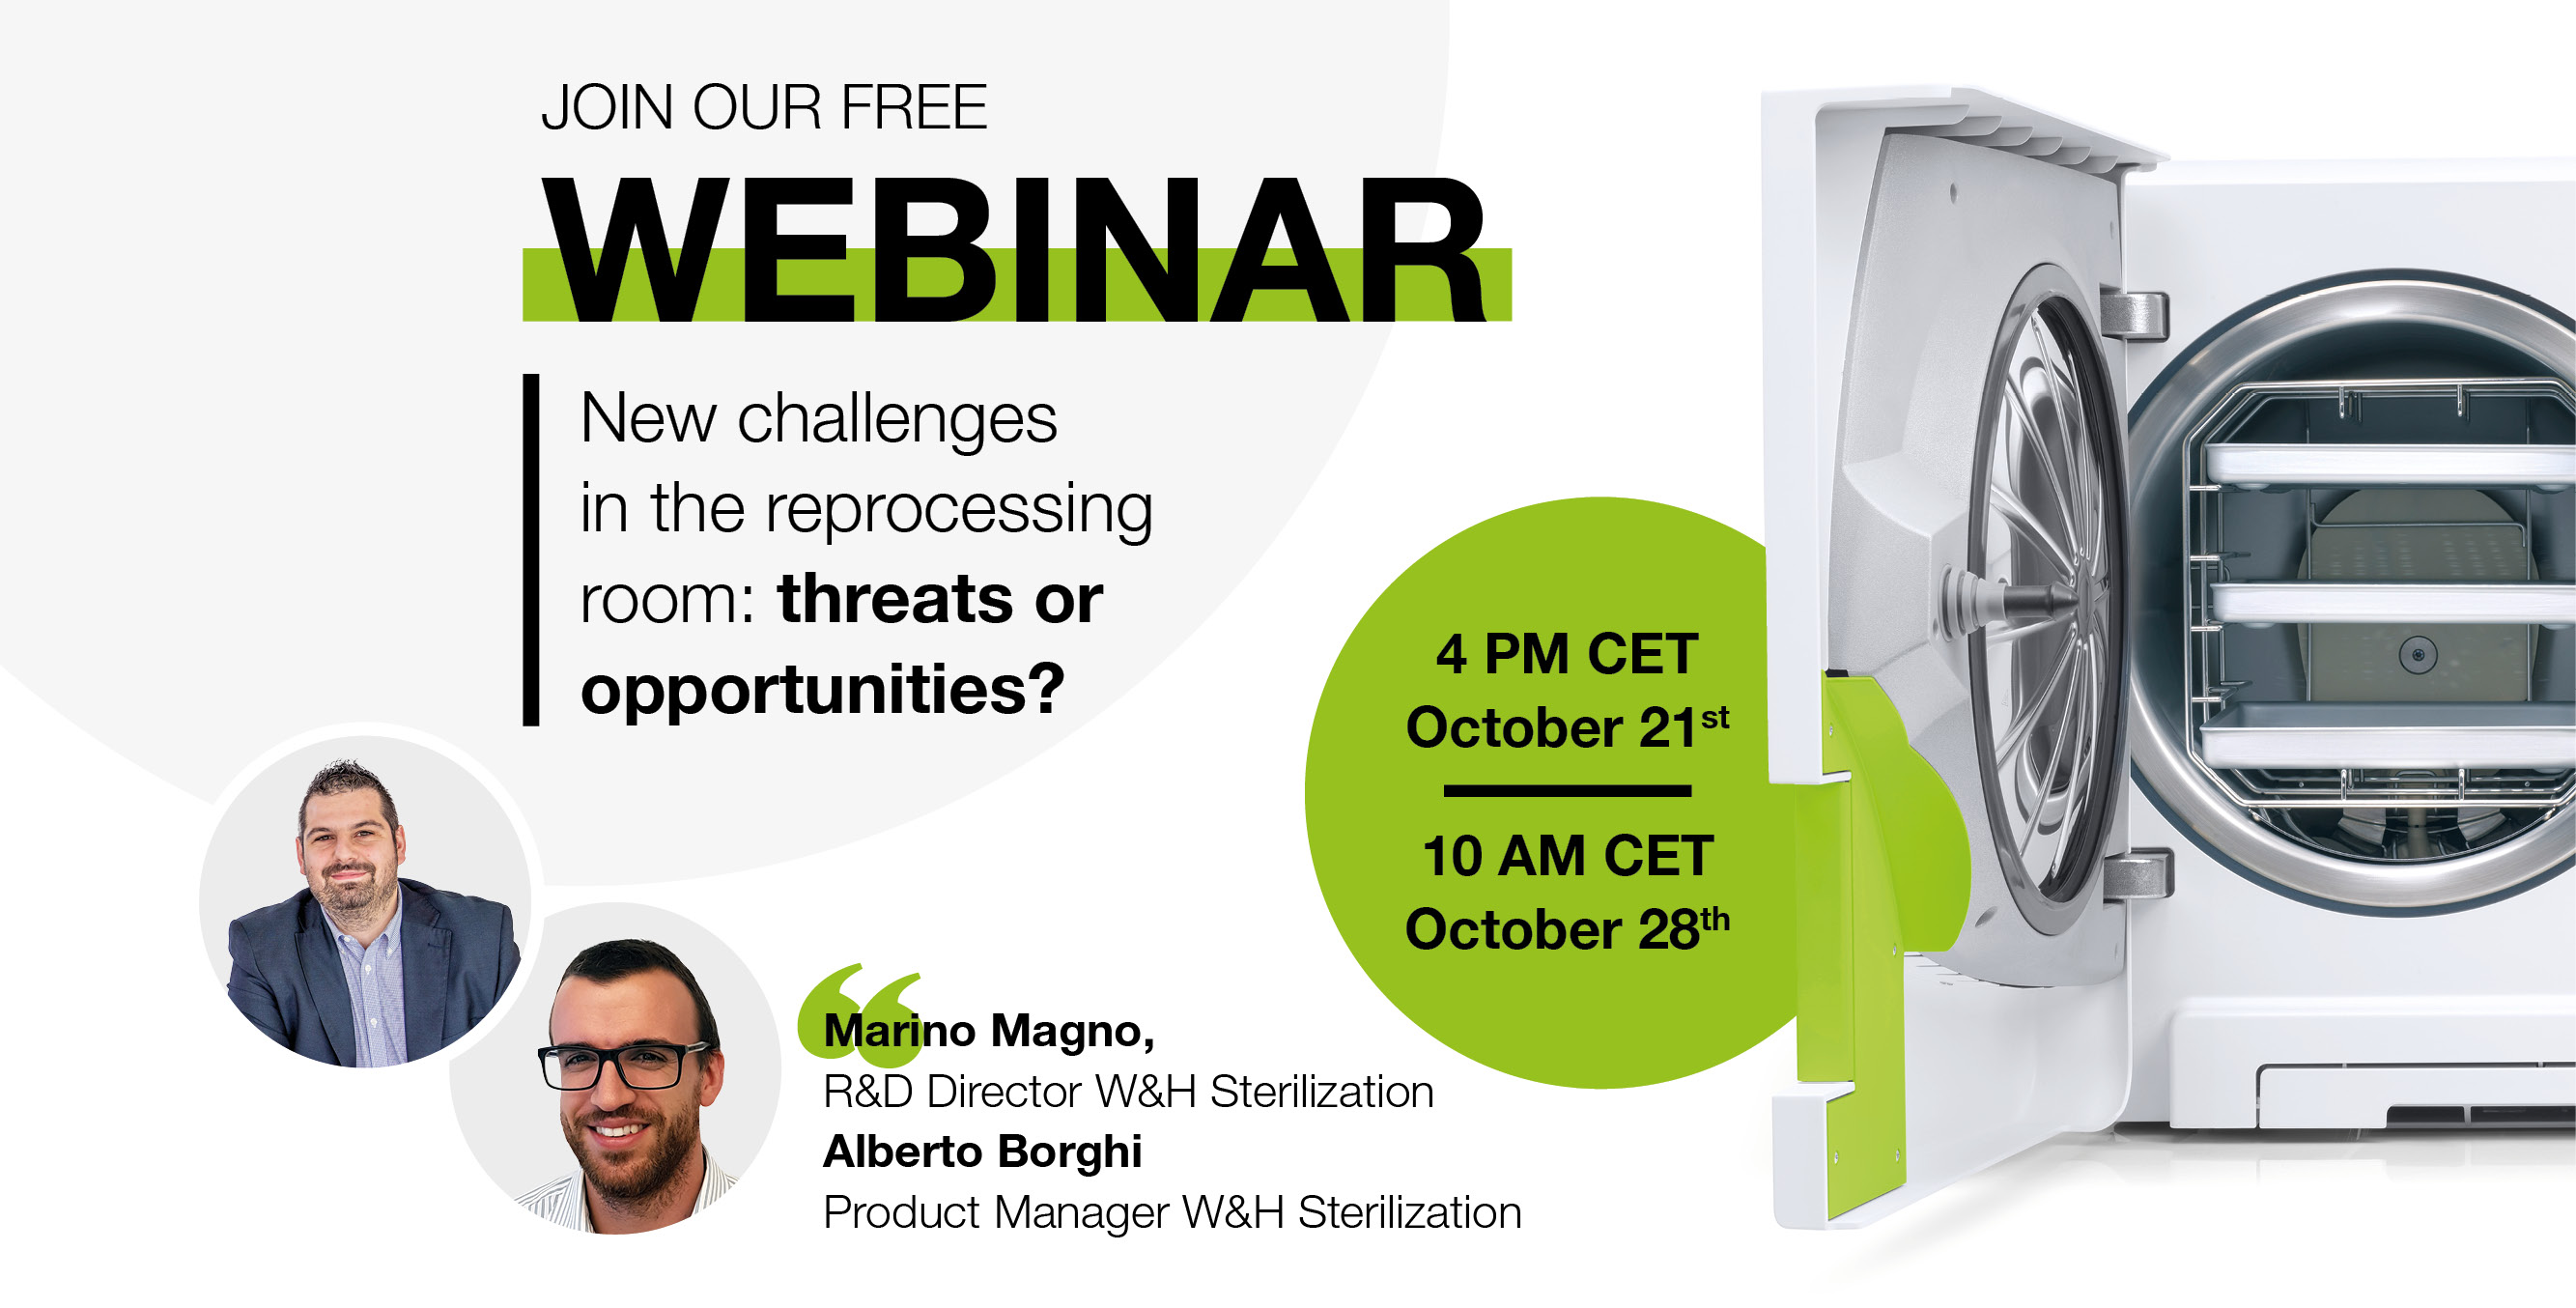 Webinar: New challenges in the reprocessing room: threats or opportunities?